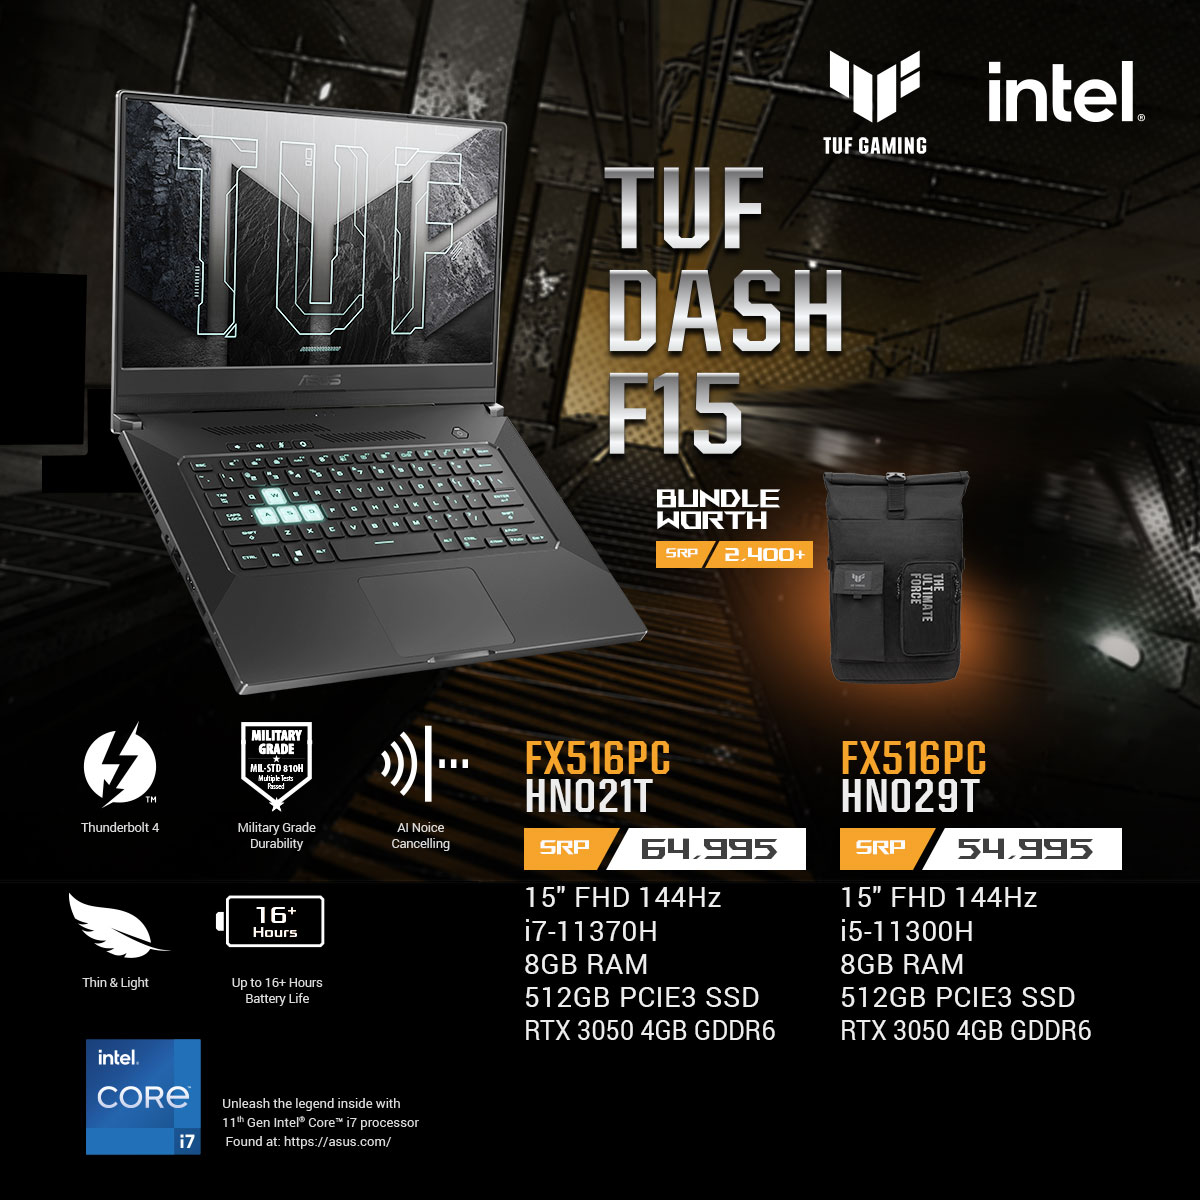 TUF Dash F15 Key Features and Price